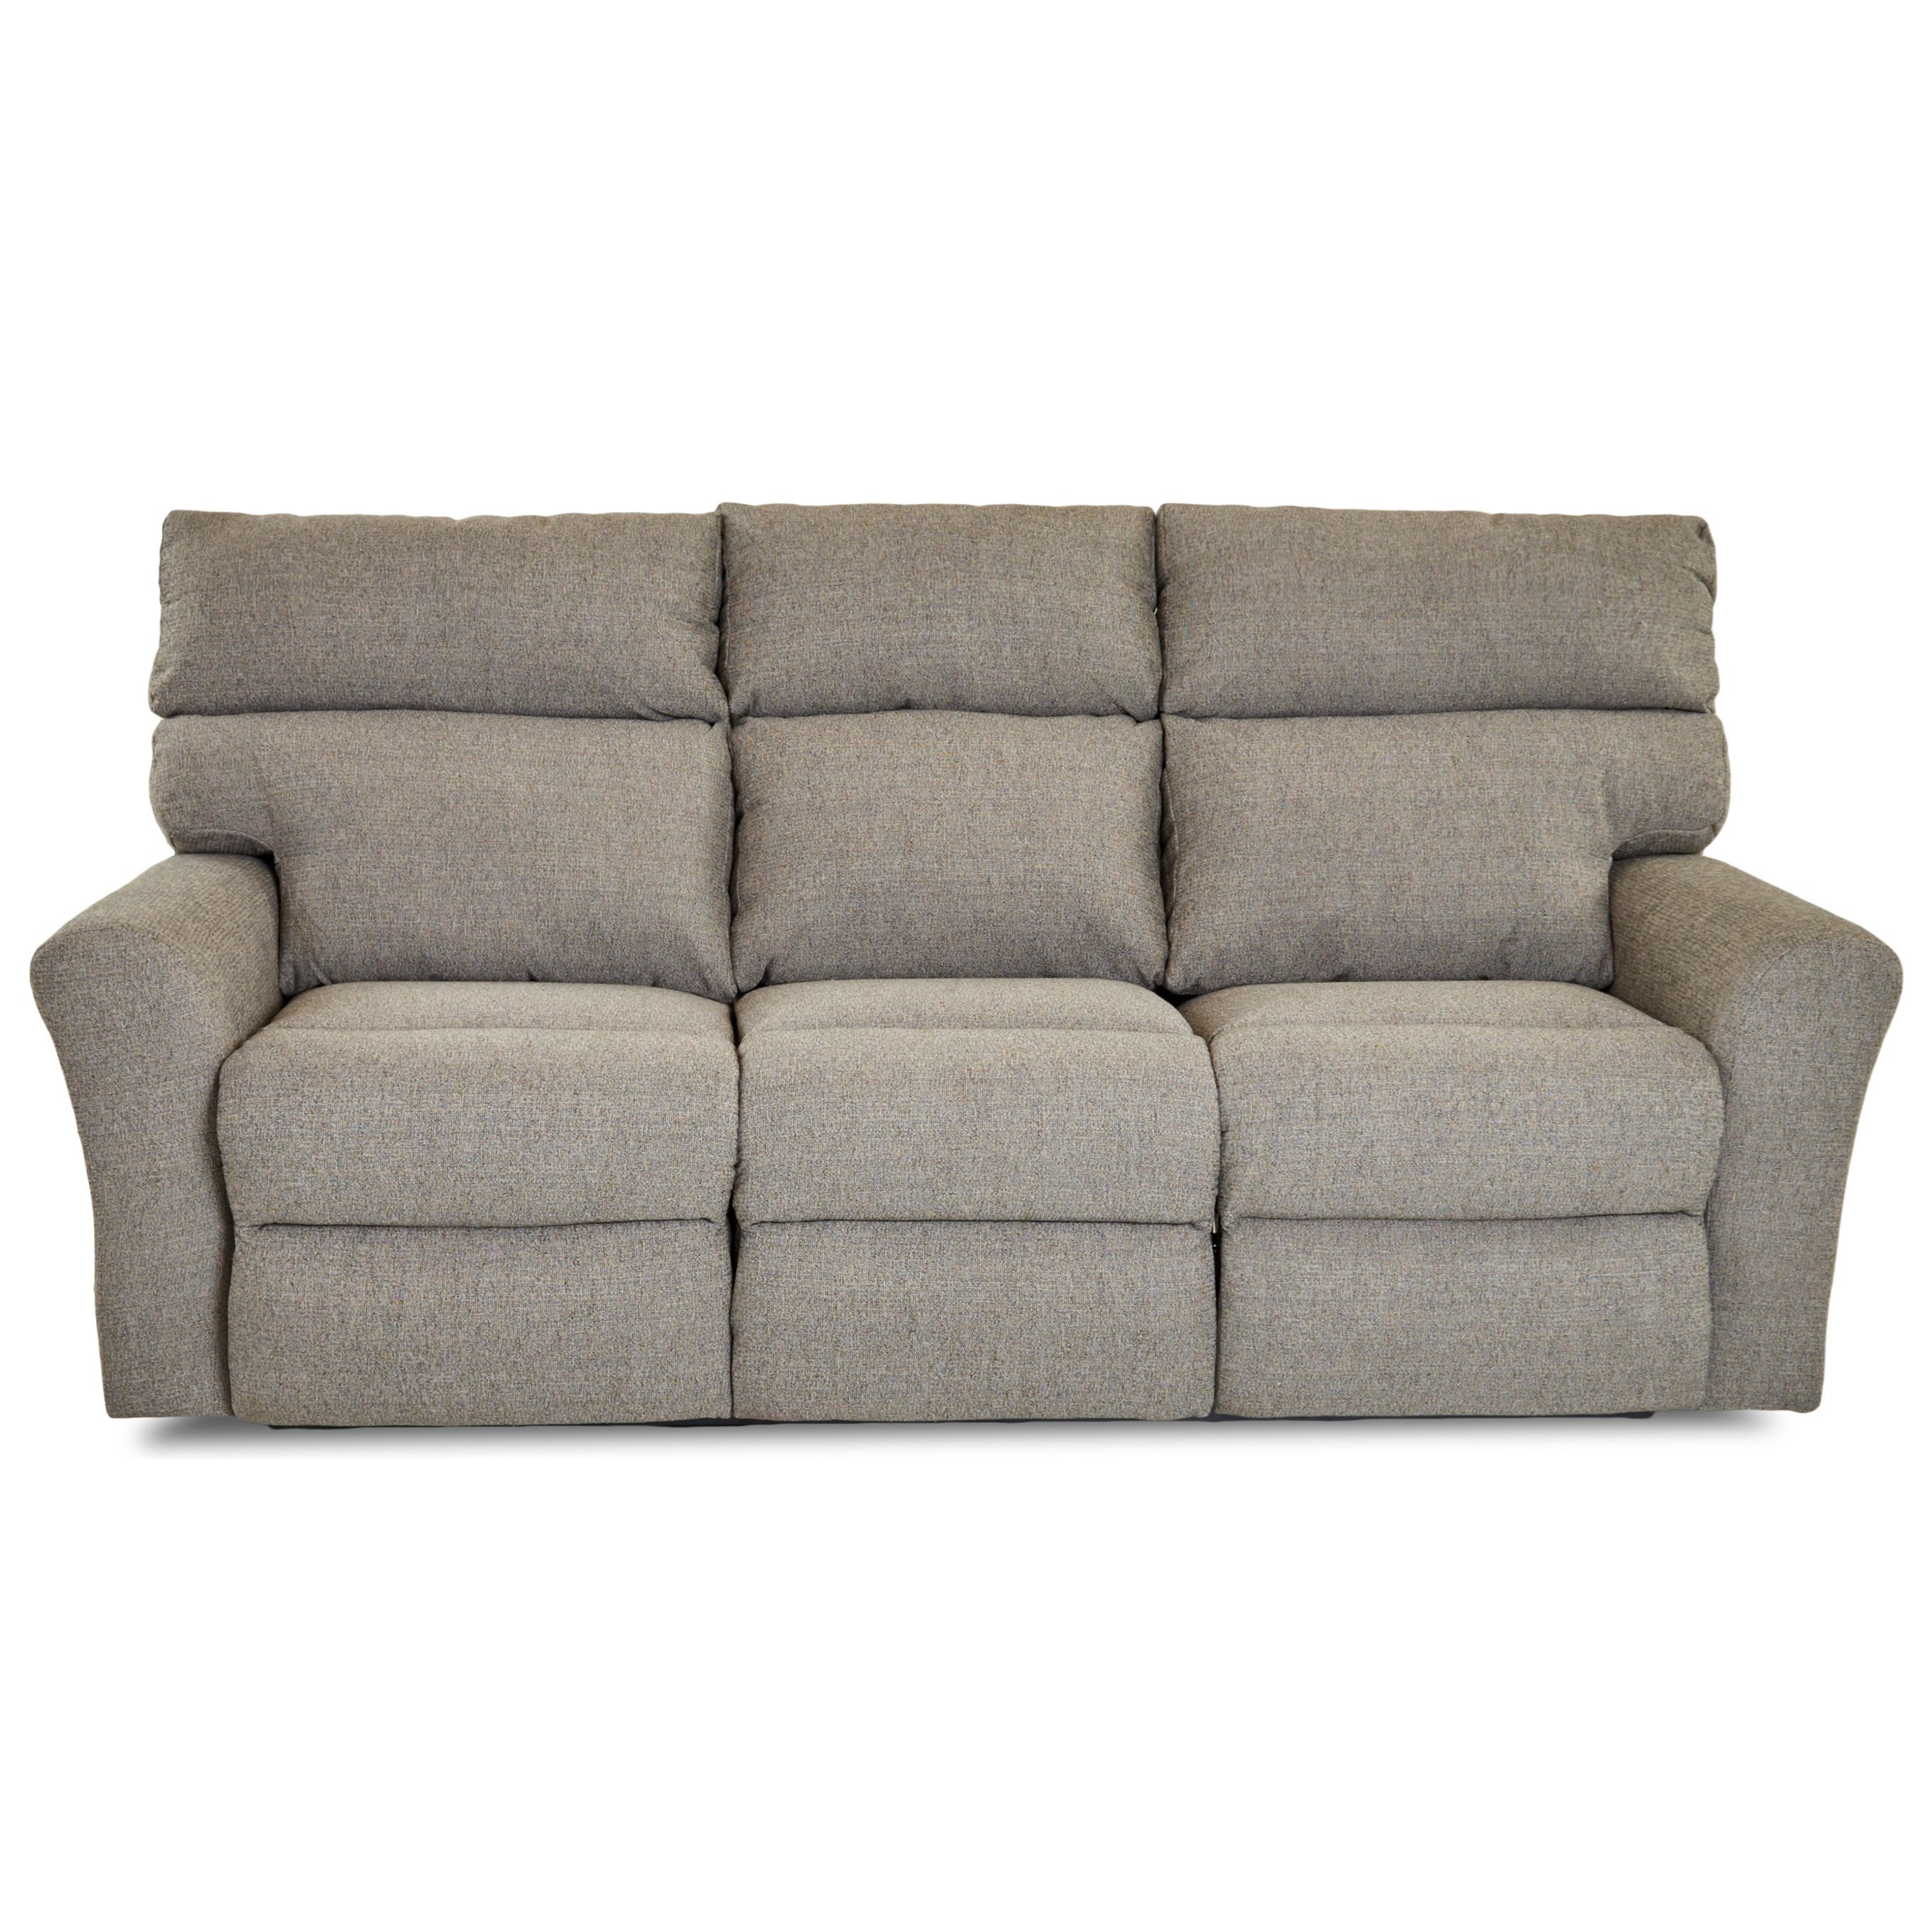 Casual Power Reclining Sofa (2 Recliners)